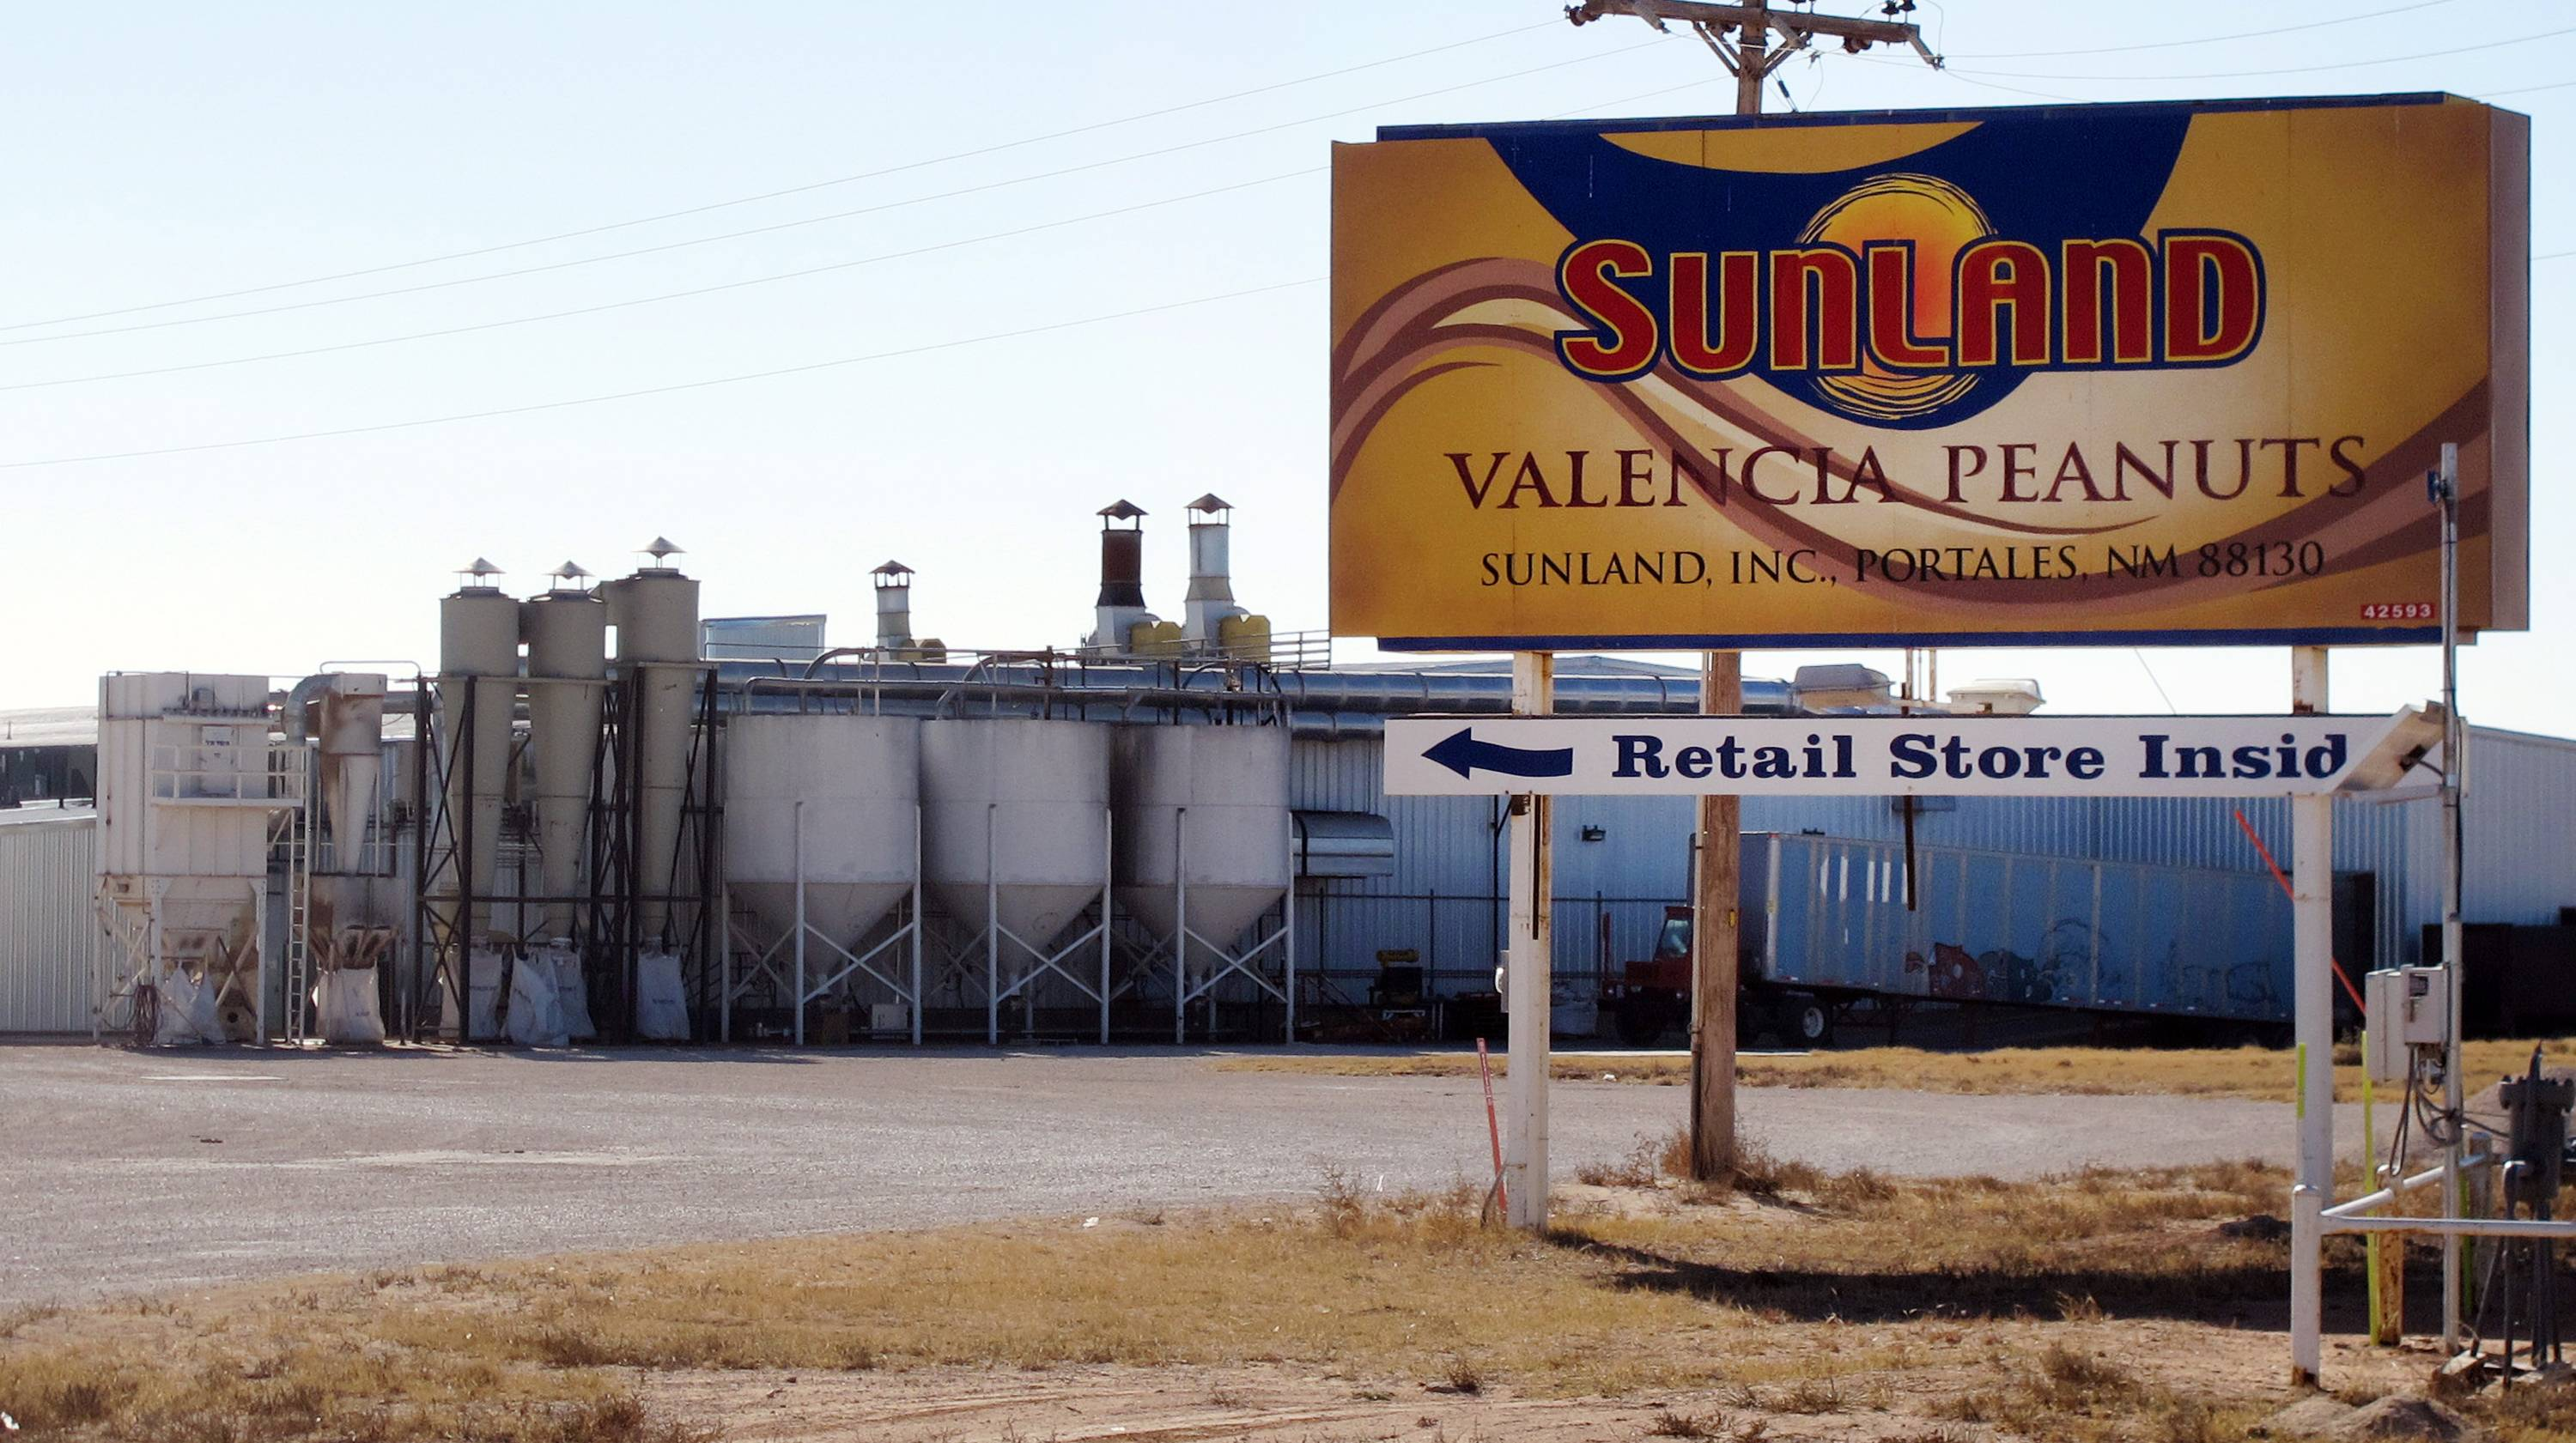 The Sunland Inc. peanut butter and nut processing plant in eastern New Mexico, near Portales. Nearly a million jars of peanut butter are being dumped at a New Mexico landfill to expedite the sale of Sunland Inc. the bankrupt peanut-processing plant that was at the heart of a 2012 salmonella outbreak and nationwide recall.